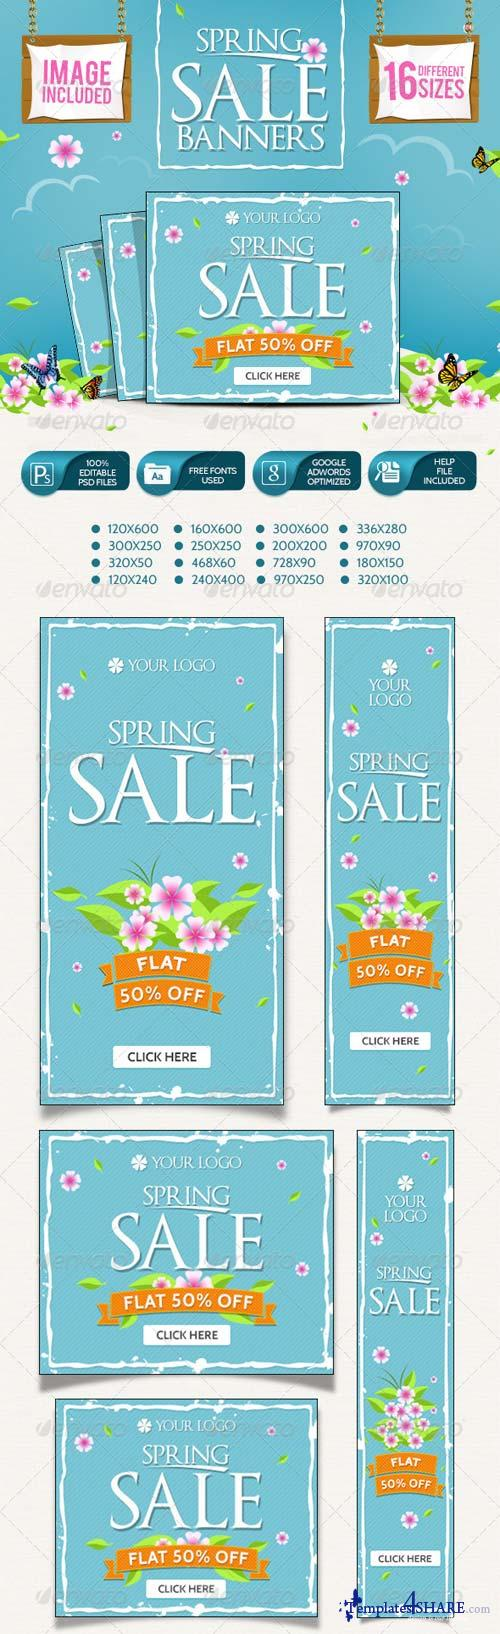 GraphicRiver Spring Sale Banners 7387174